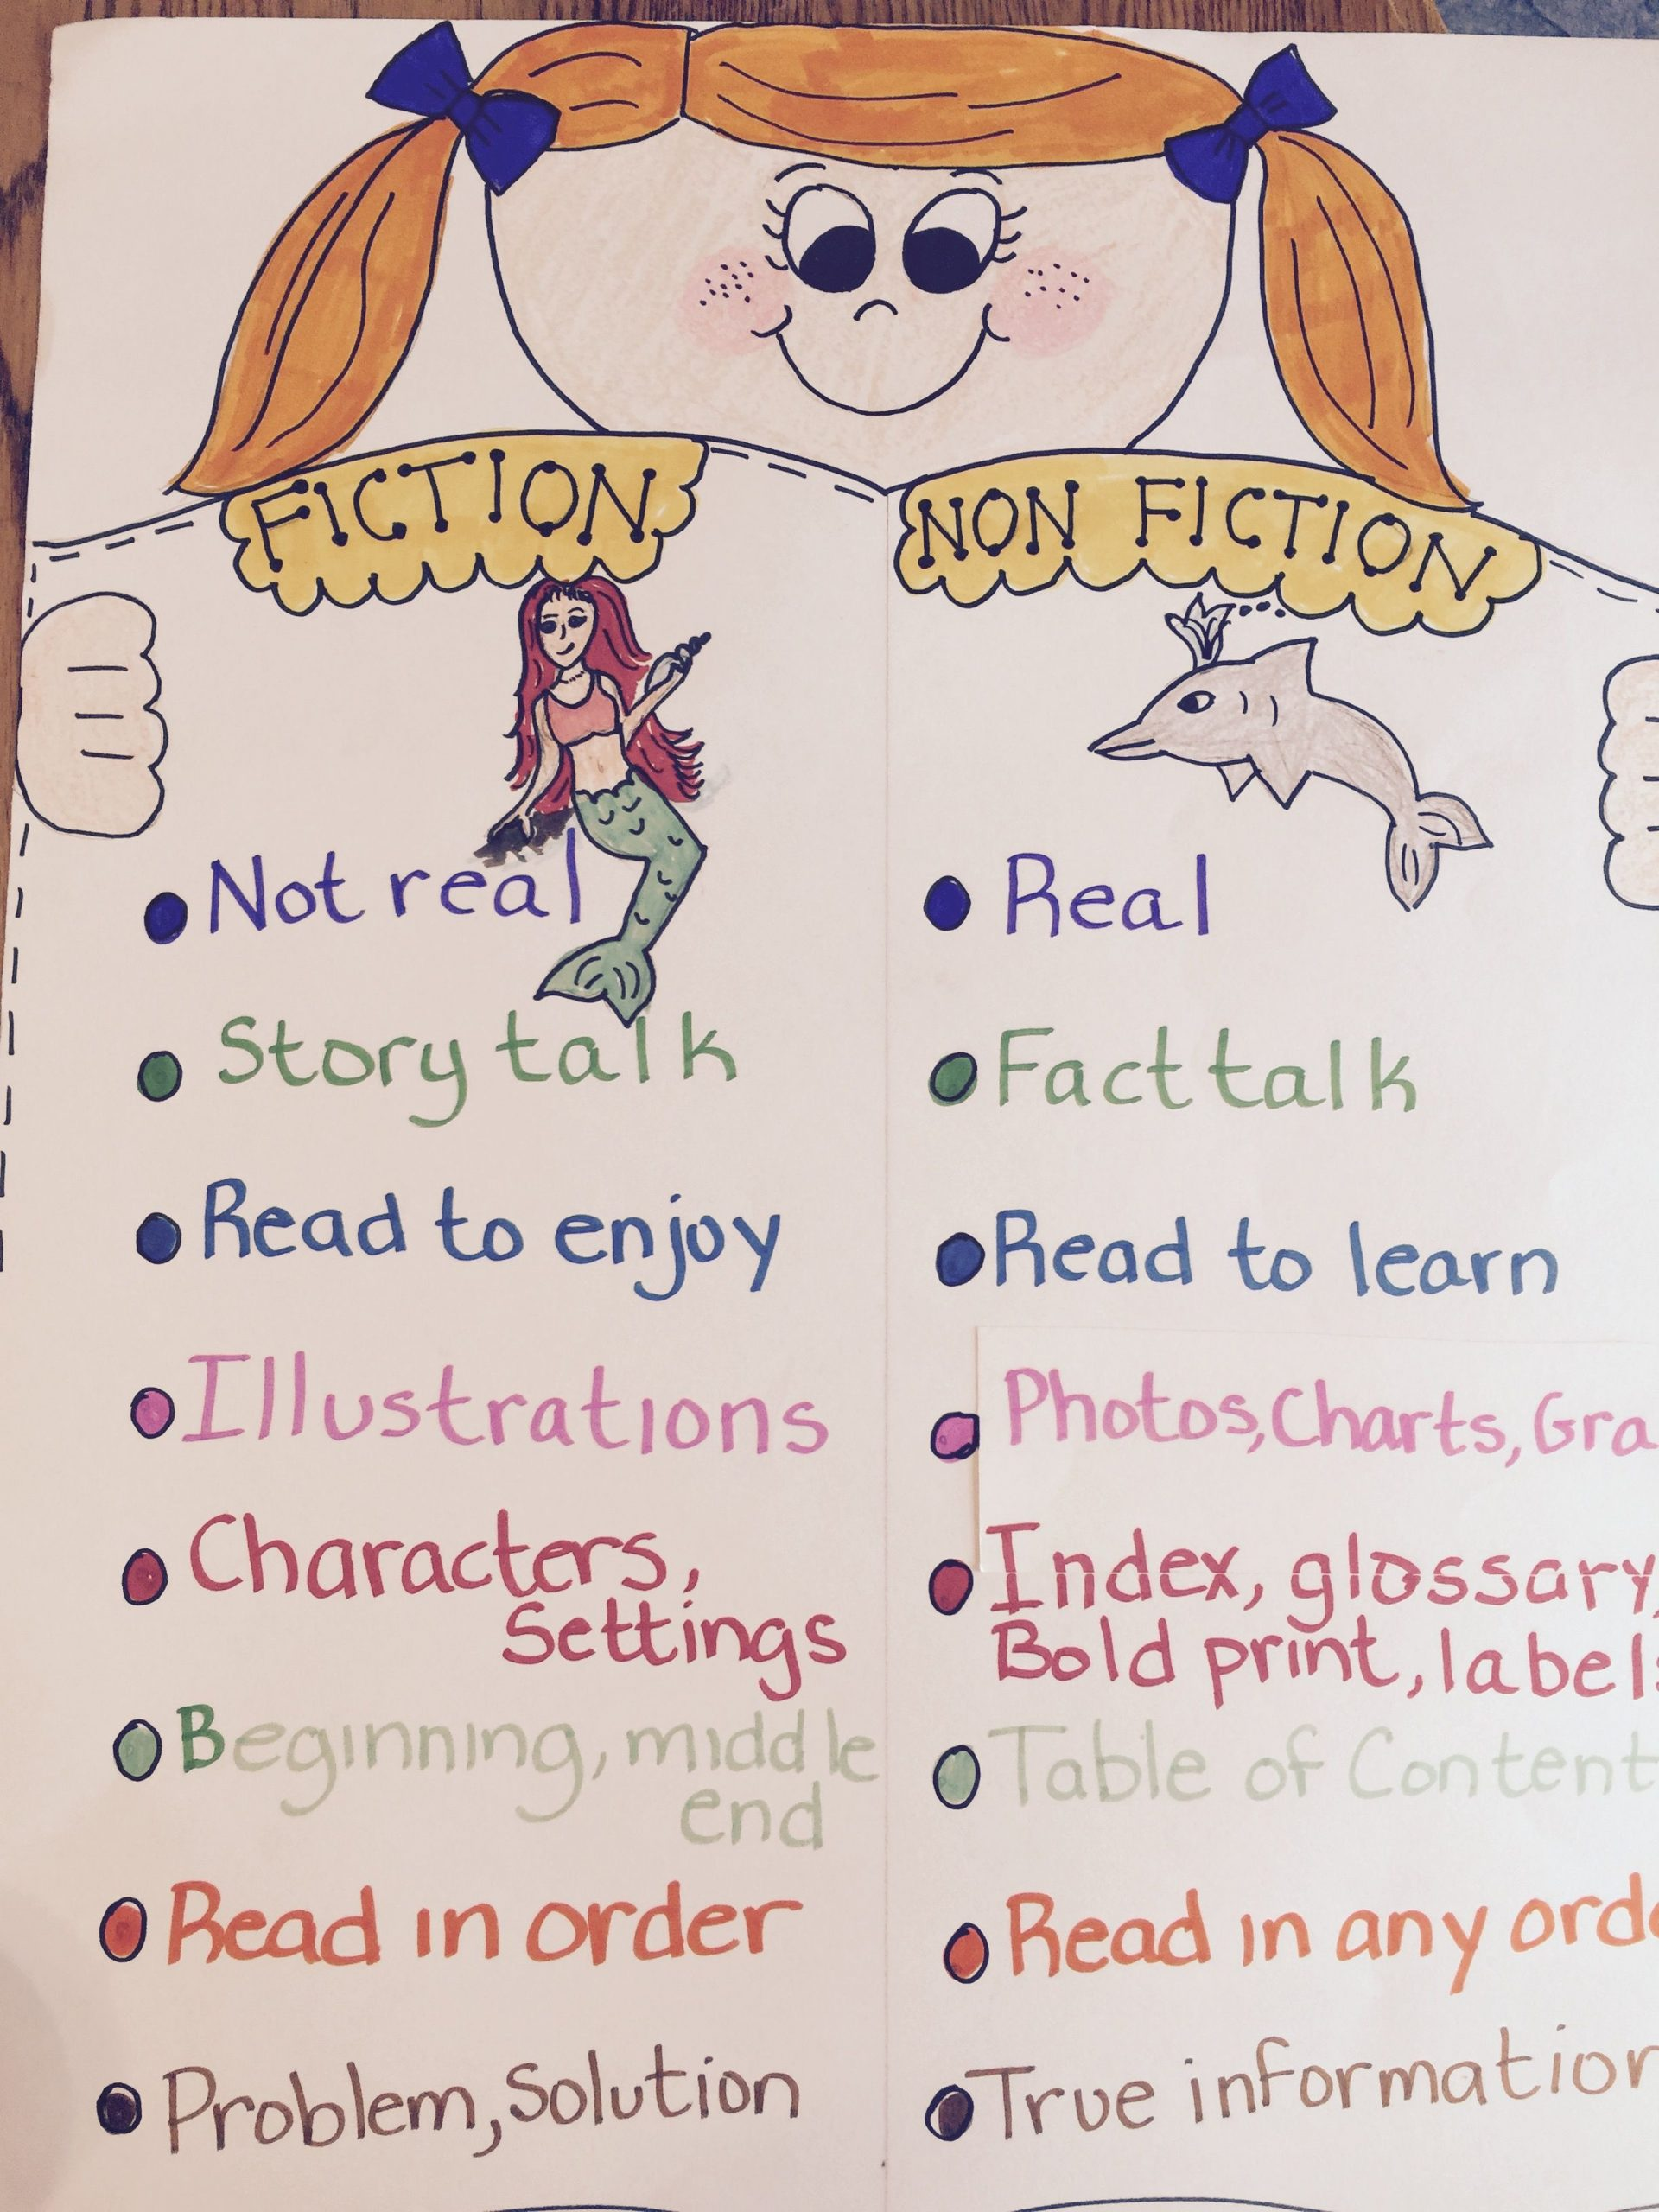 30 Fiction Vs Nonfiction Worksheet